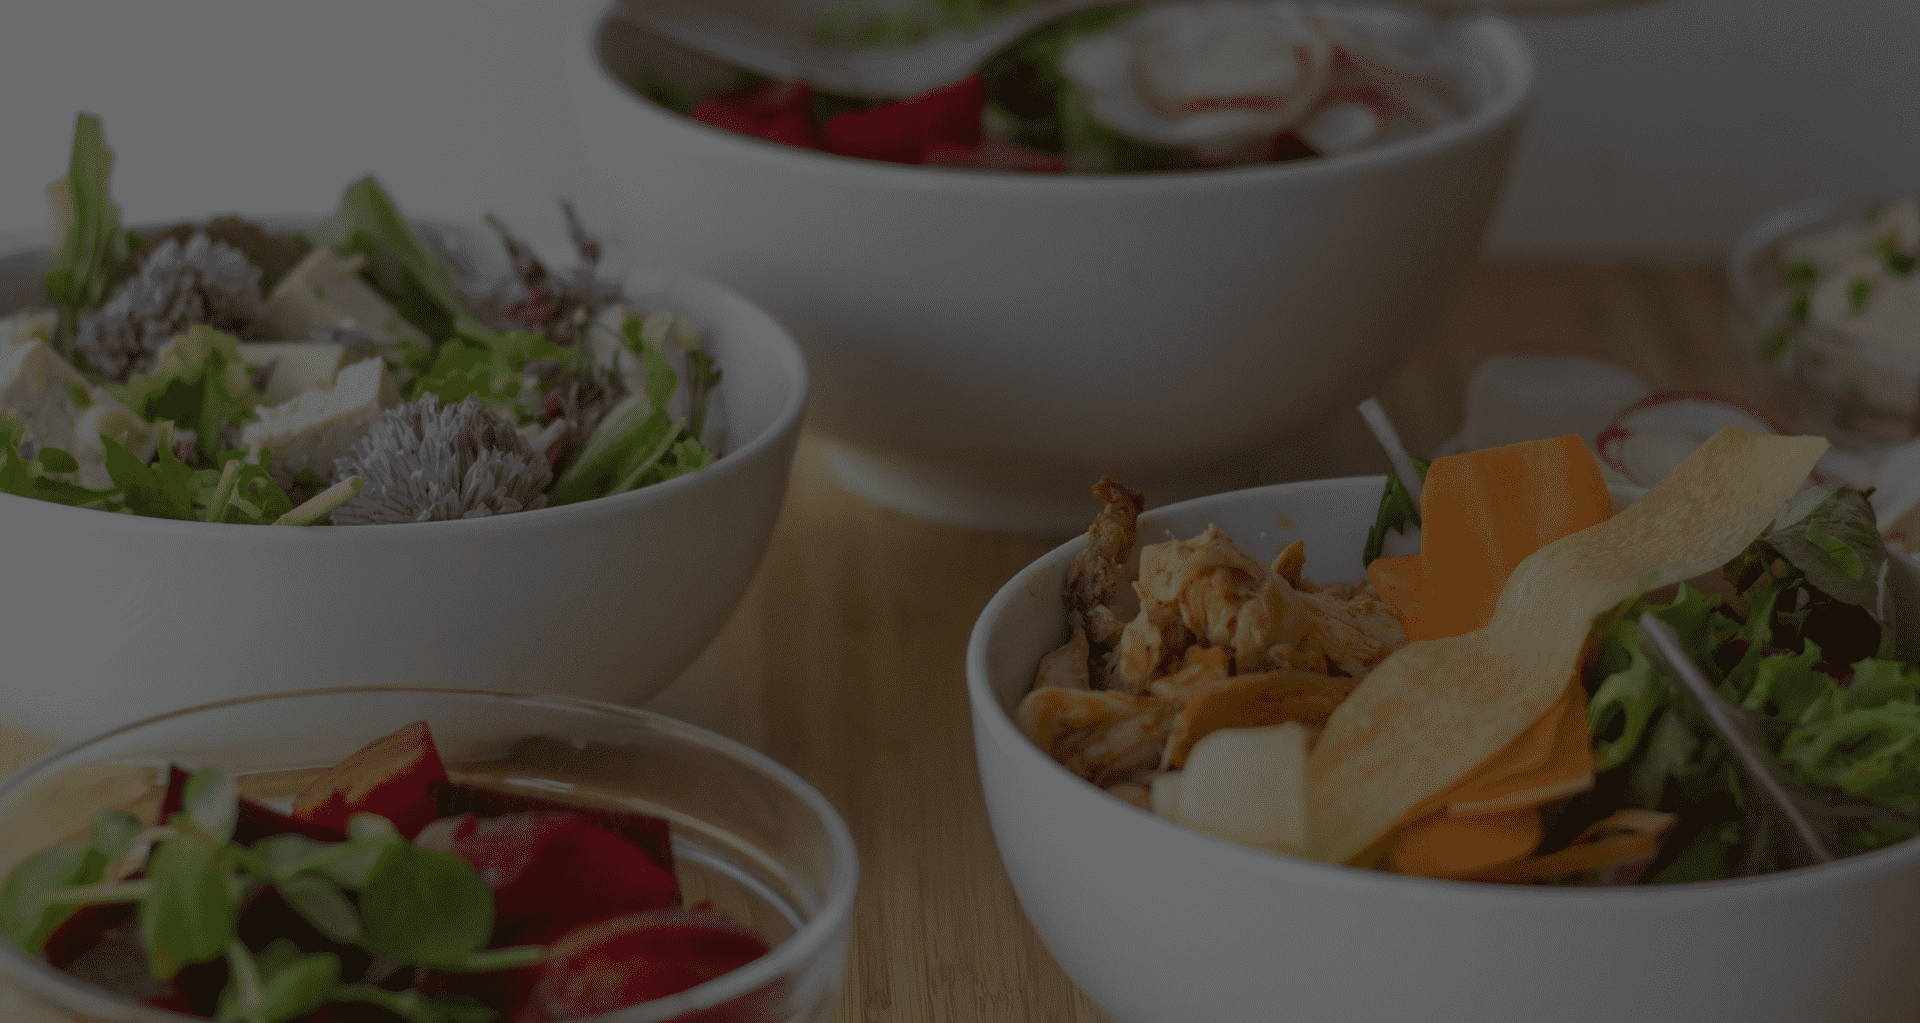 Corporate catering service healthy vegatable bowls for office lunch